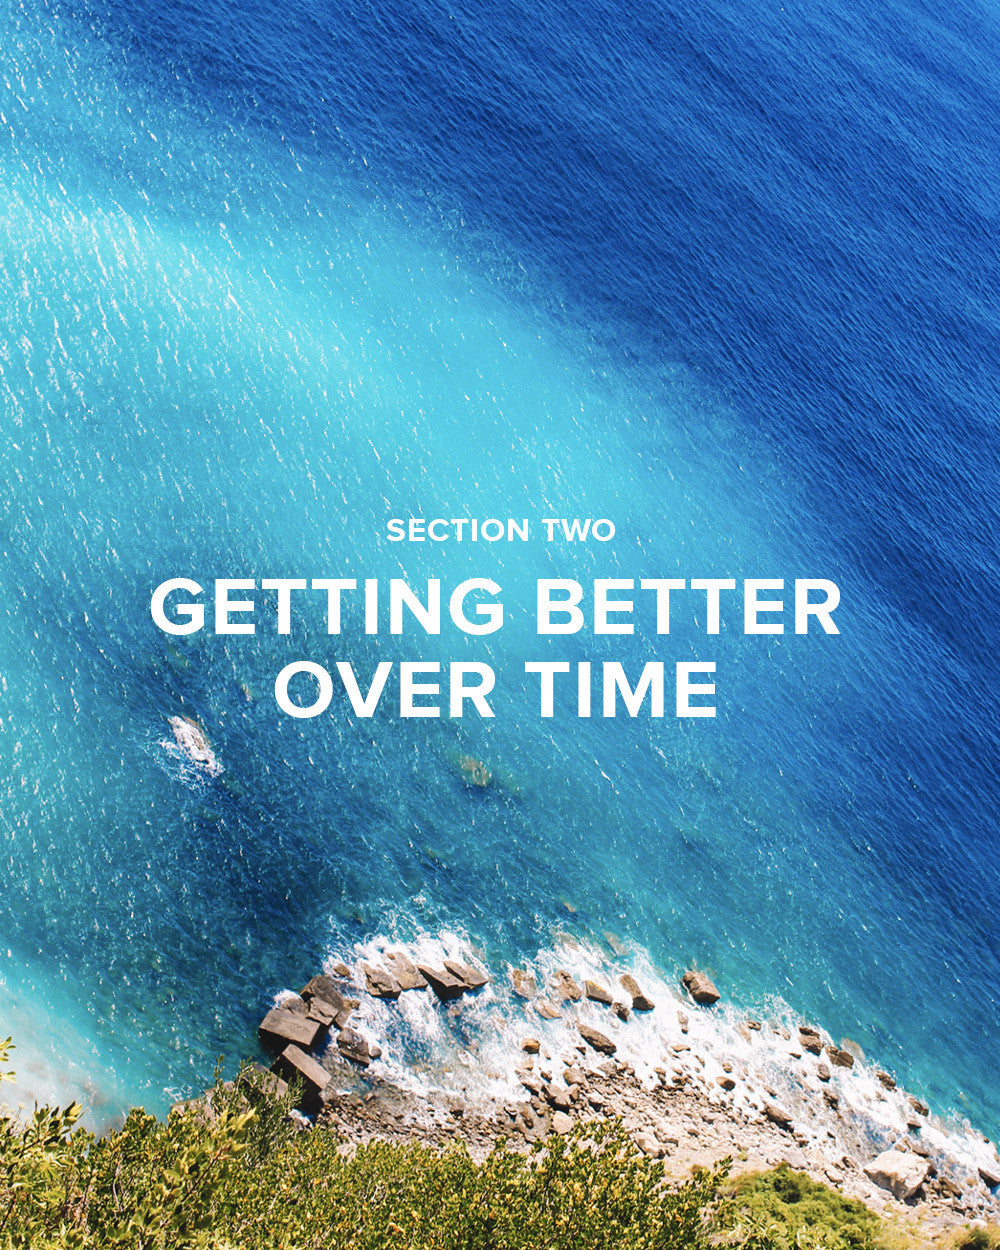 Section 2: Getting Better Over Time